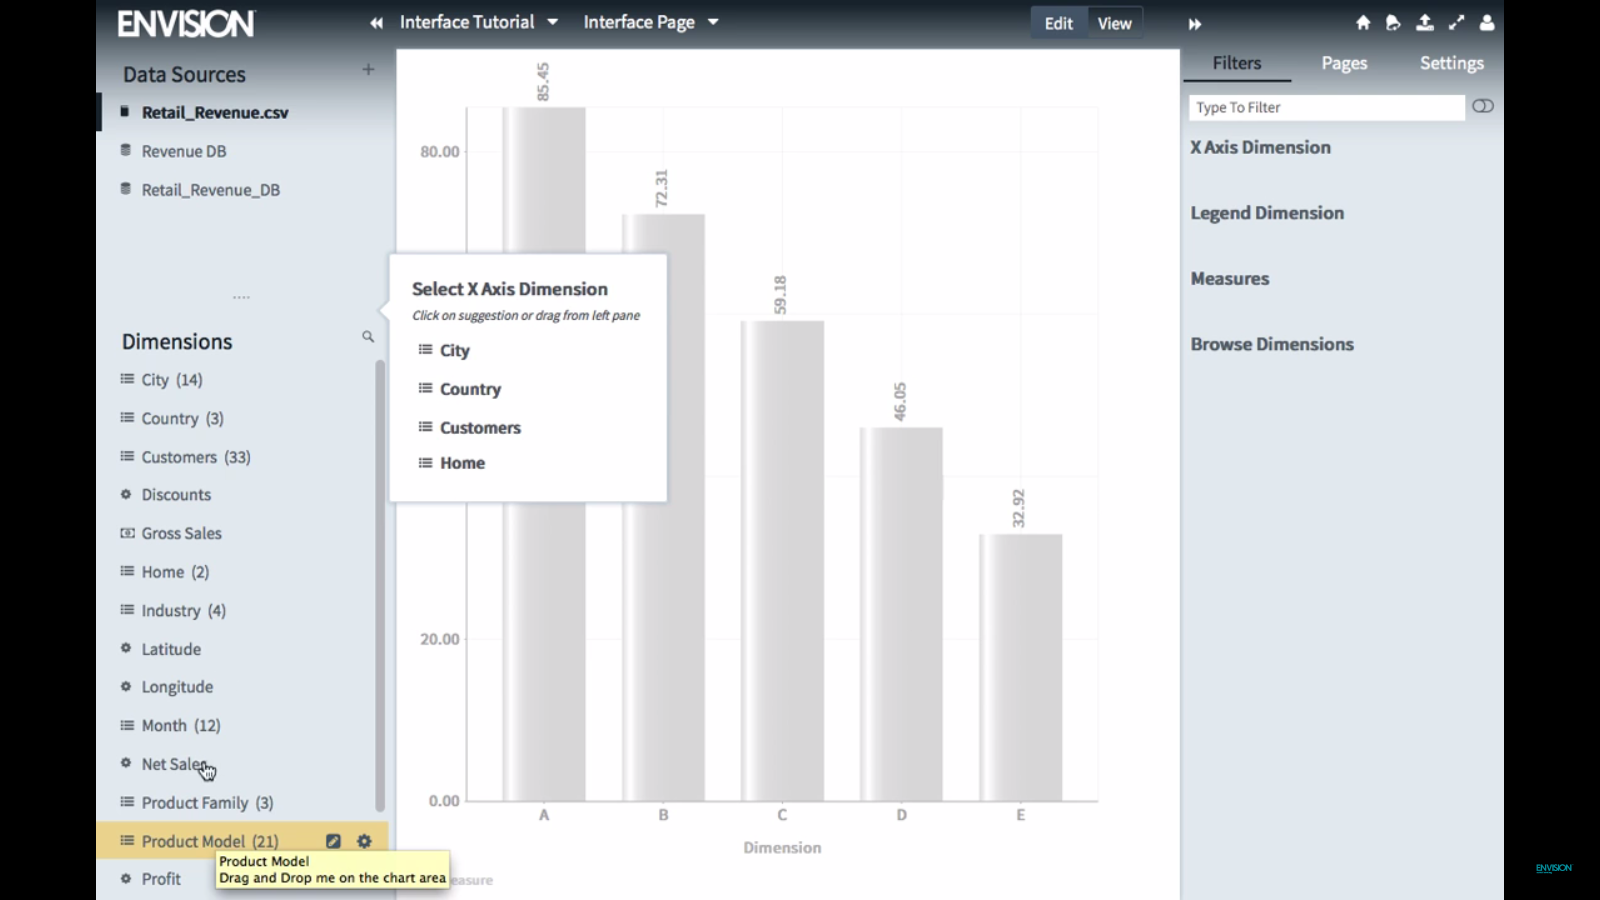 Carriots Analytics Software - Drag-and-drop product model